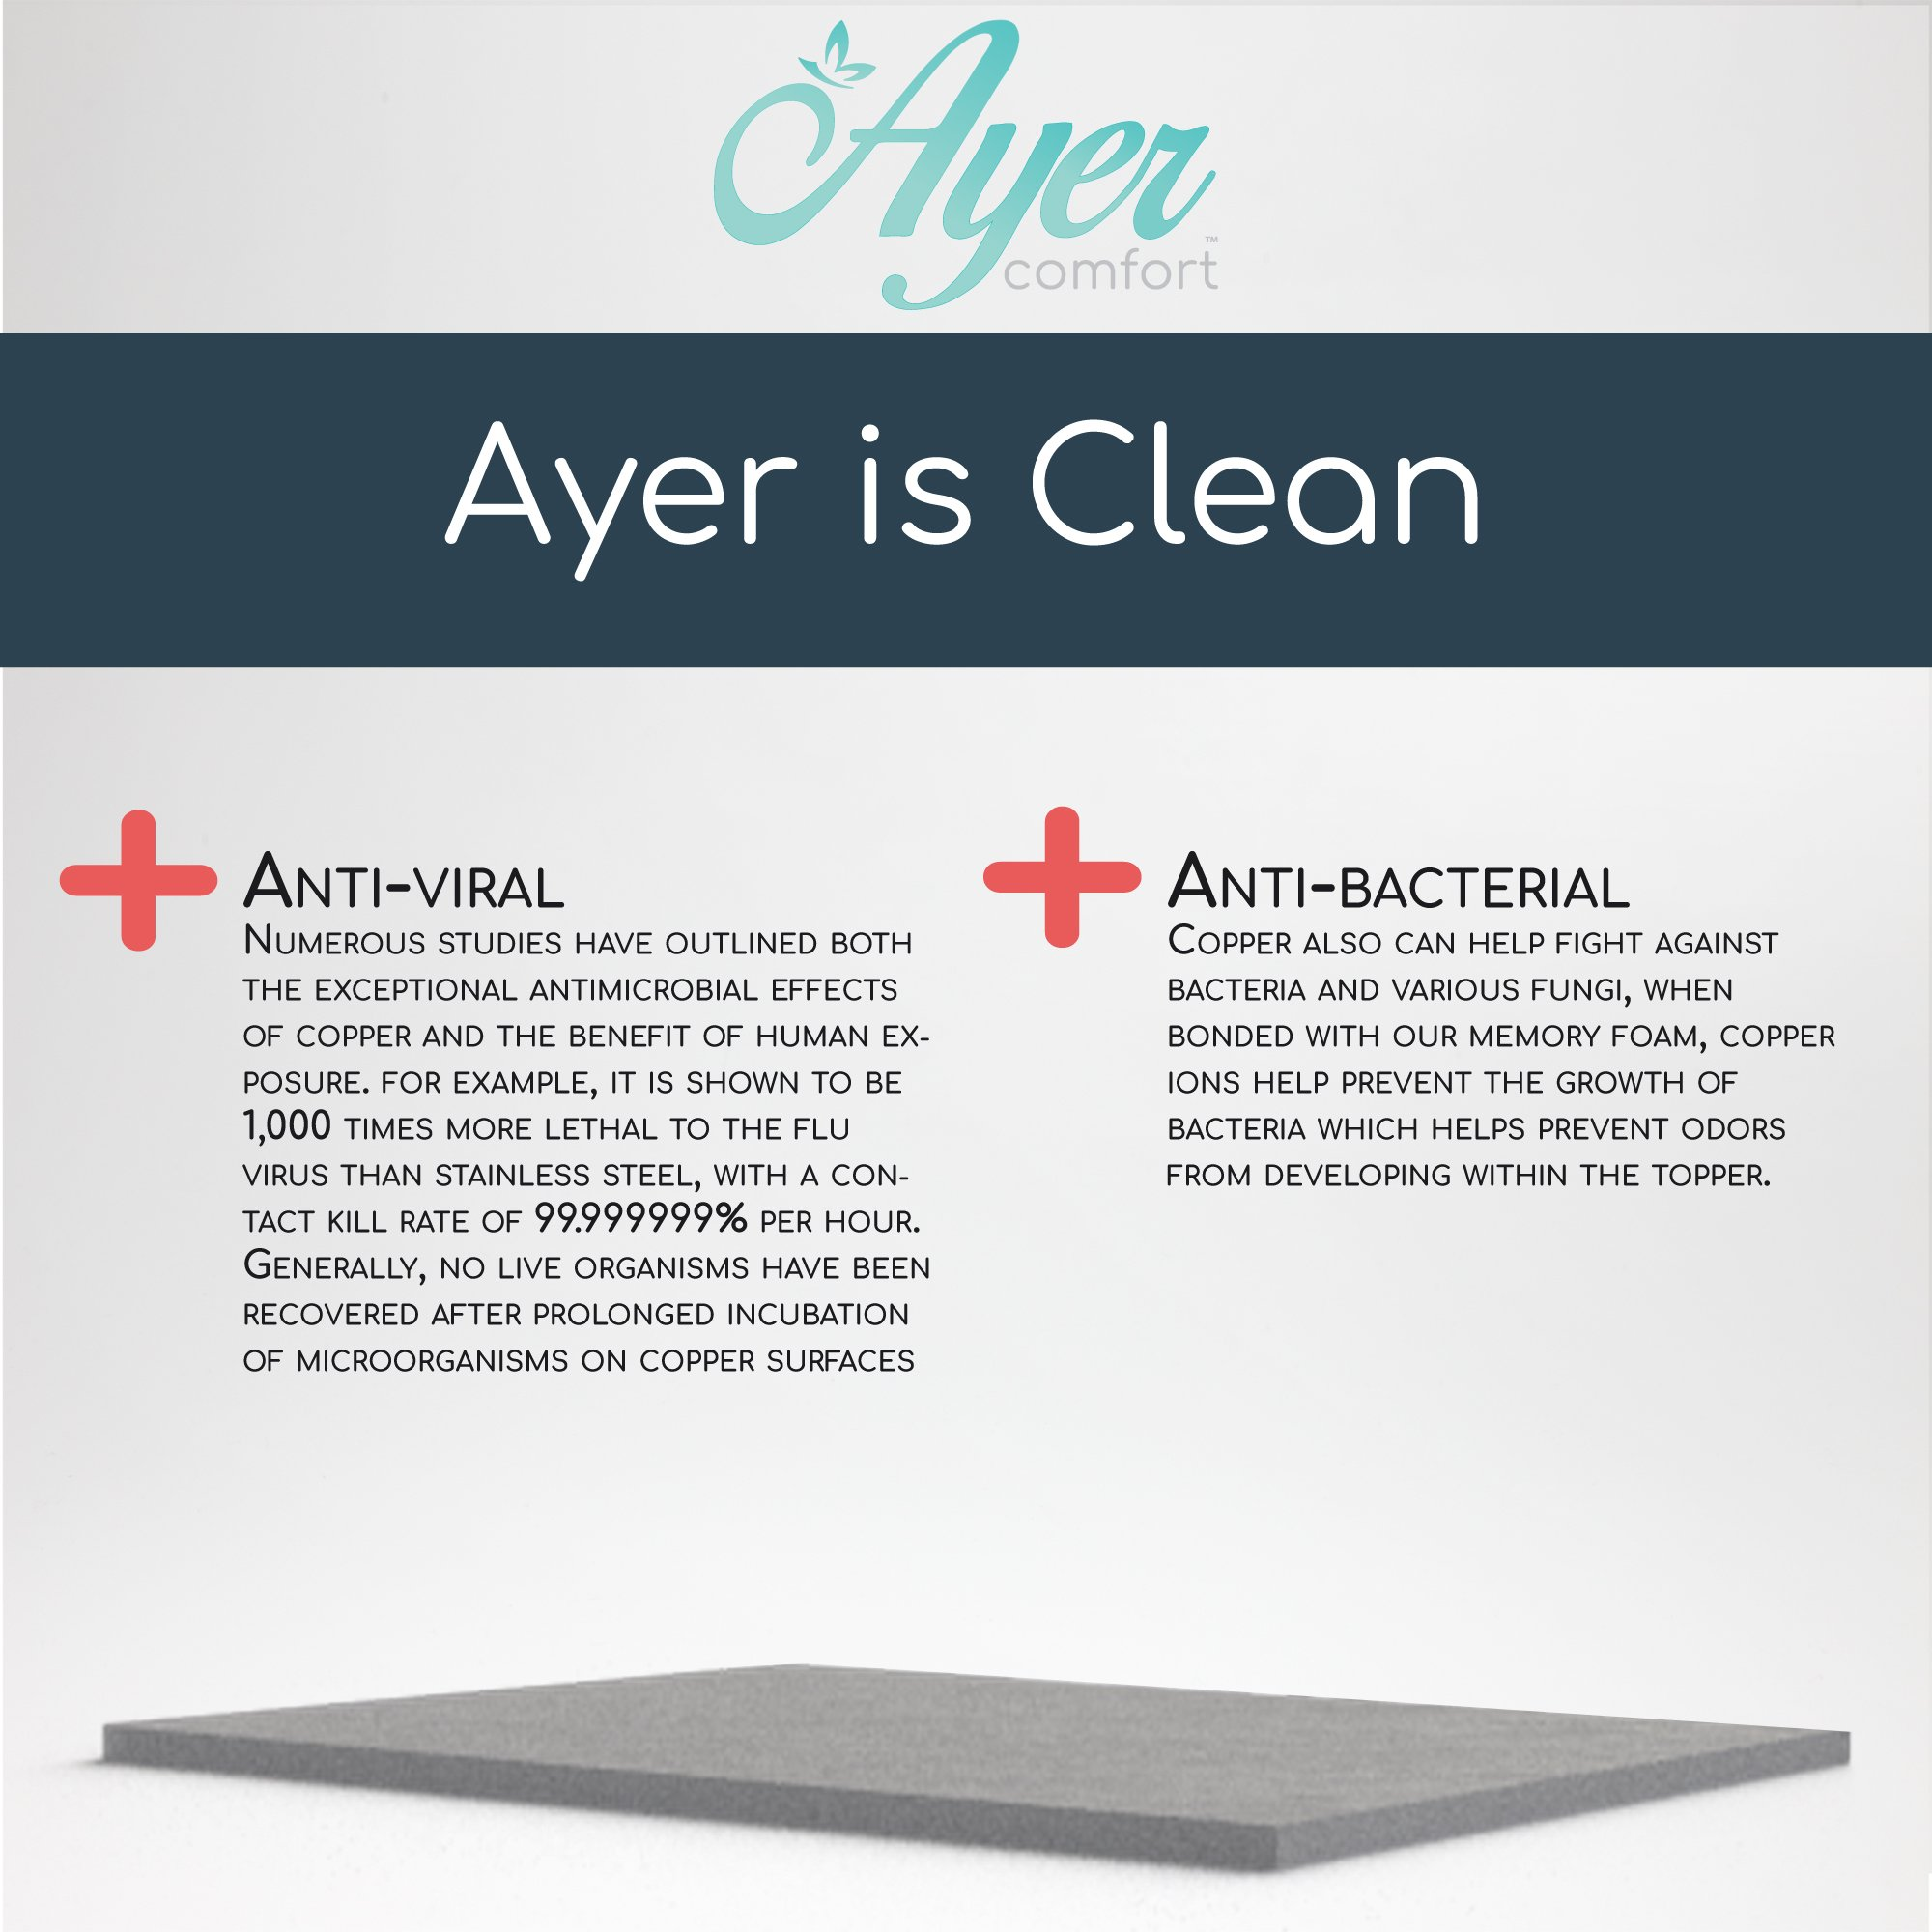 Ayer Comfort 3 Inch Copper Infused Memory Foam Mattress Topper Made in the USA - Twin by Ayer Comfort (Image #4)